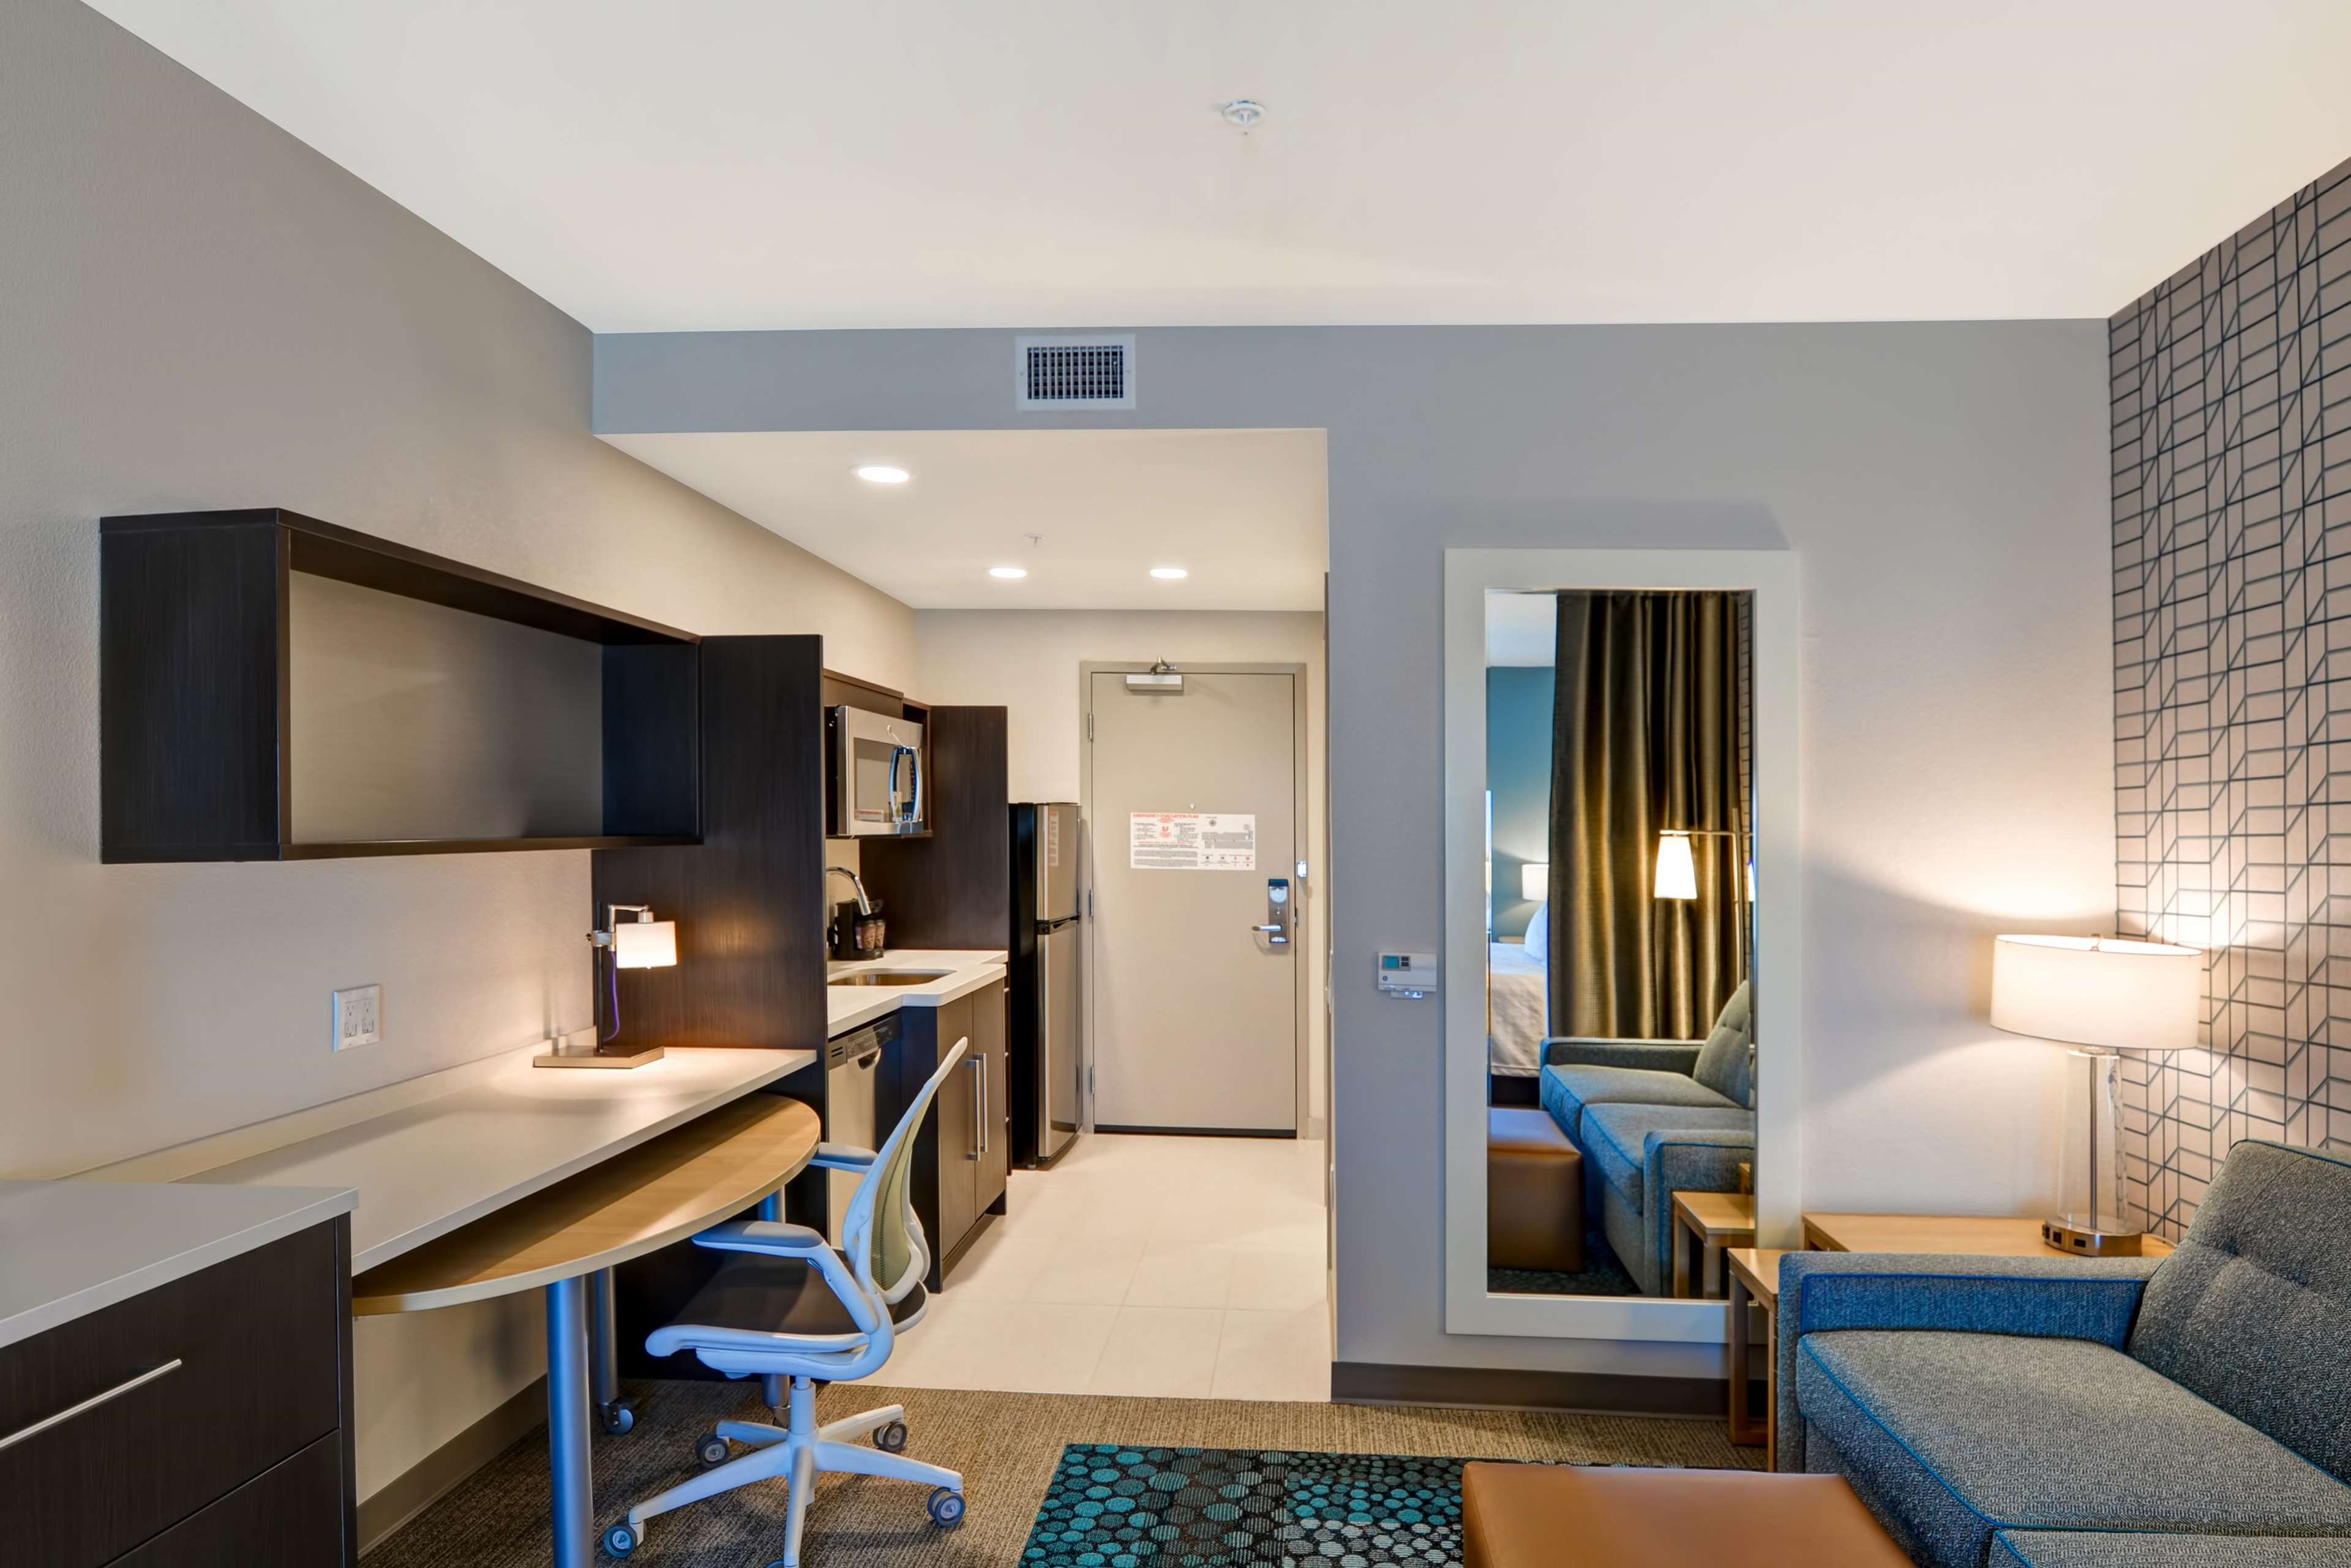 Home2 Suites by Hilton Palmdale image 20